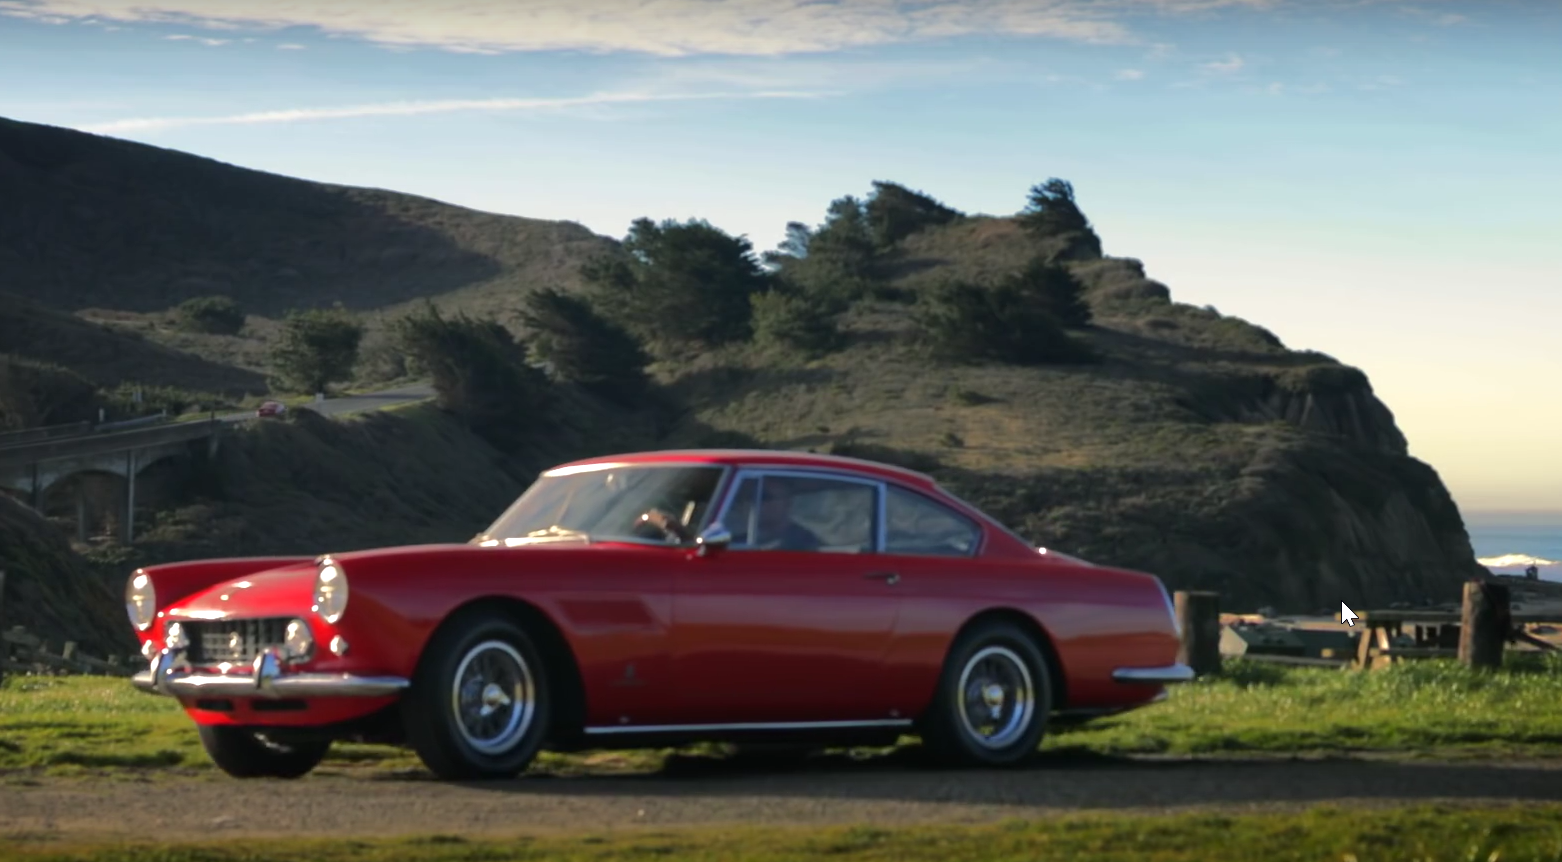 Chevy-Swapped Ferrari - Ep. 5 - An Italian-designed work of art with the soul of an American ironworker. When seen on its own, it's a celebration. Yet when it's seen on the back of its stablemate, it becomes an experience.